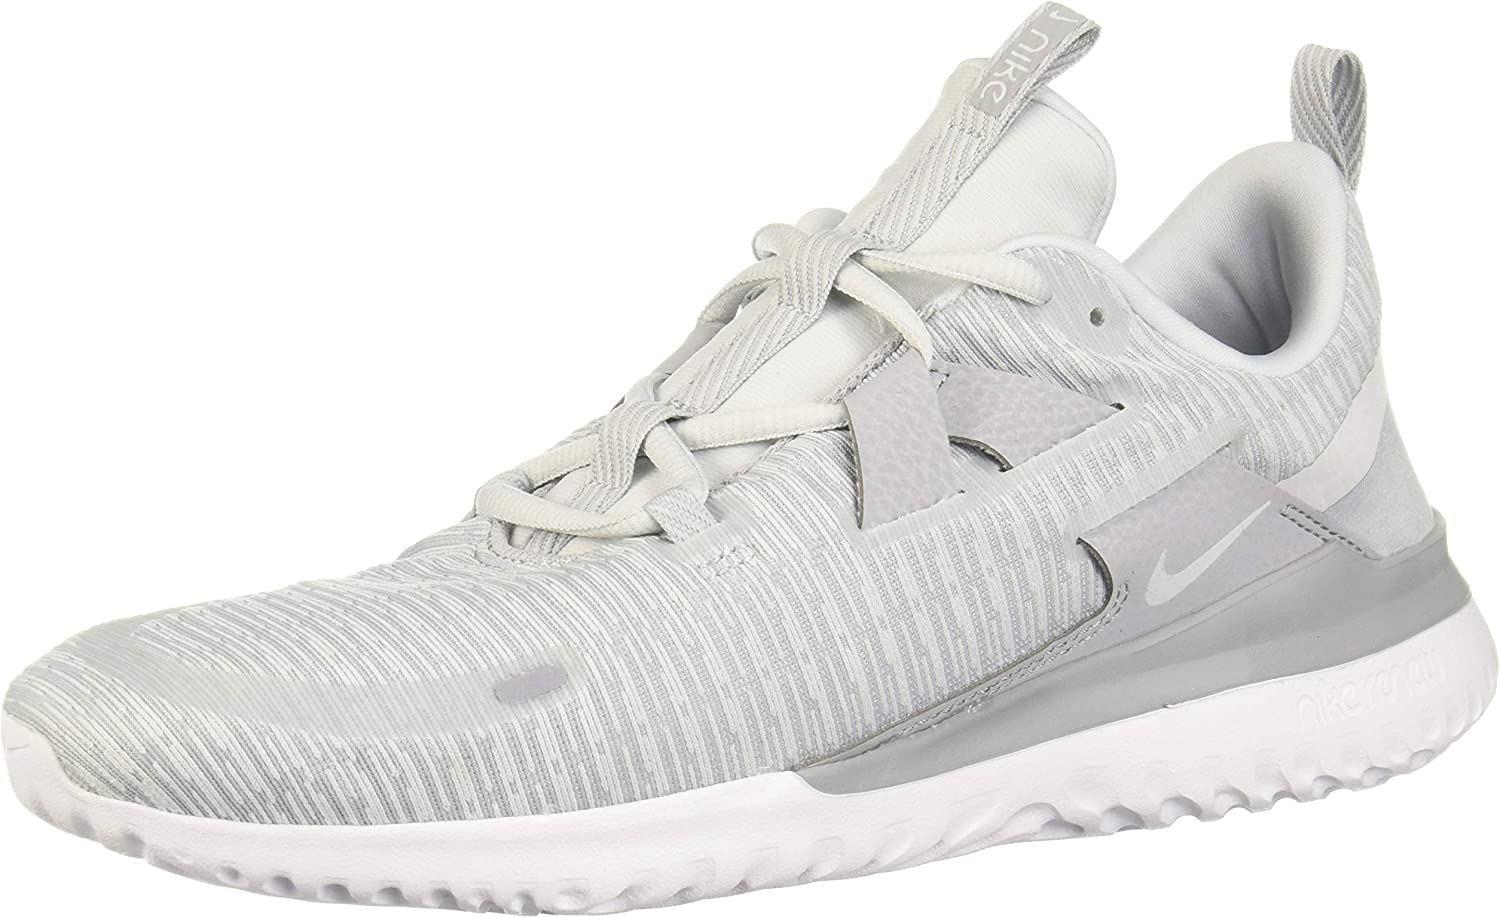 Nike Mens Renew Arena Running Shoes, Wolf Grey Pure Platinum White